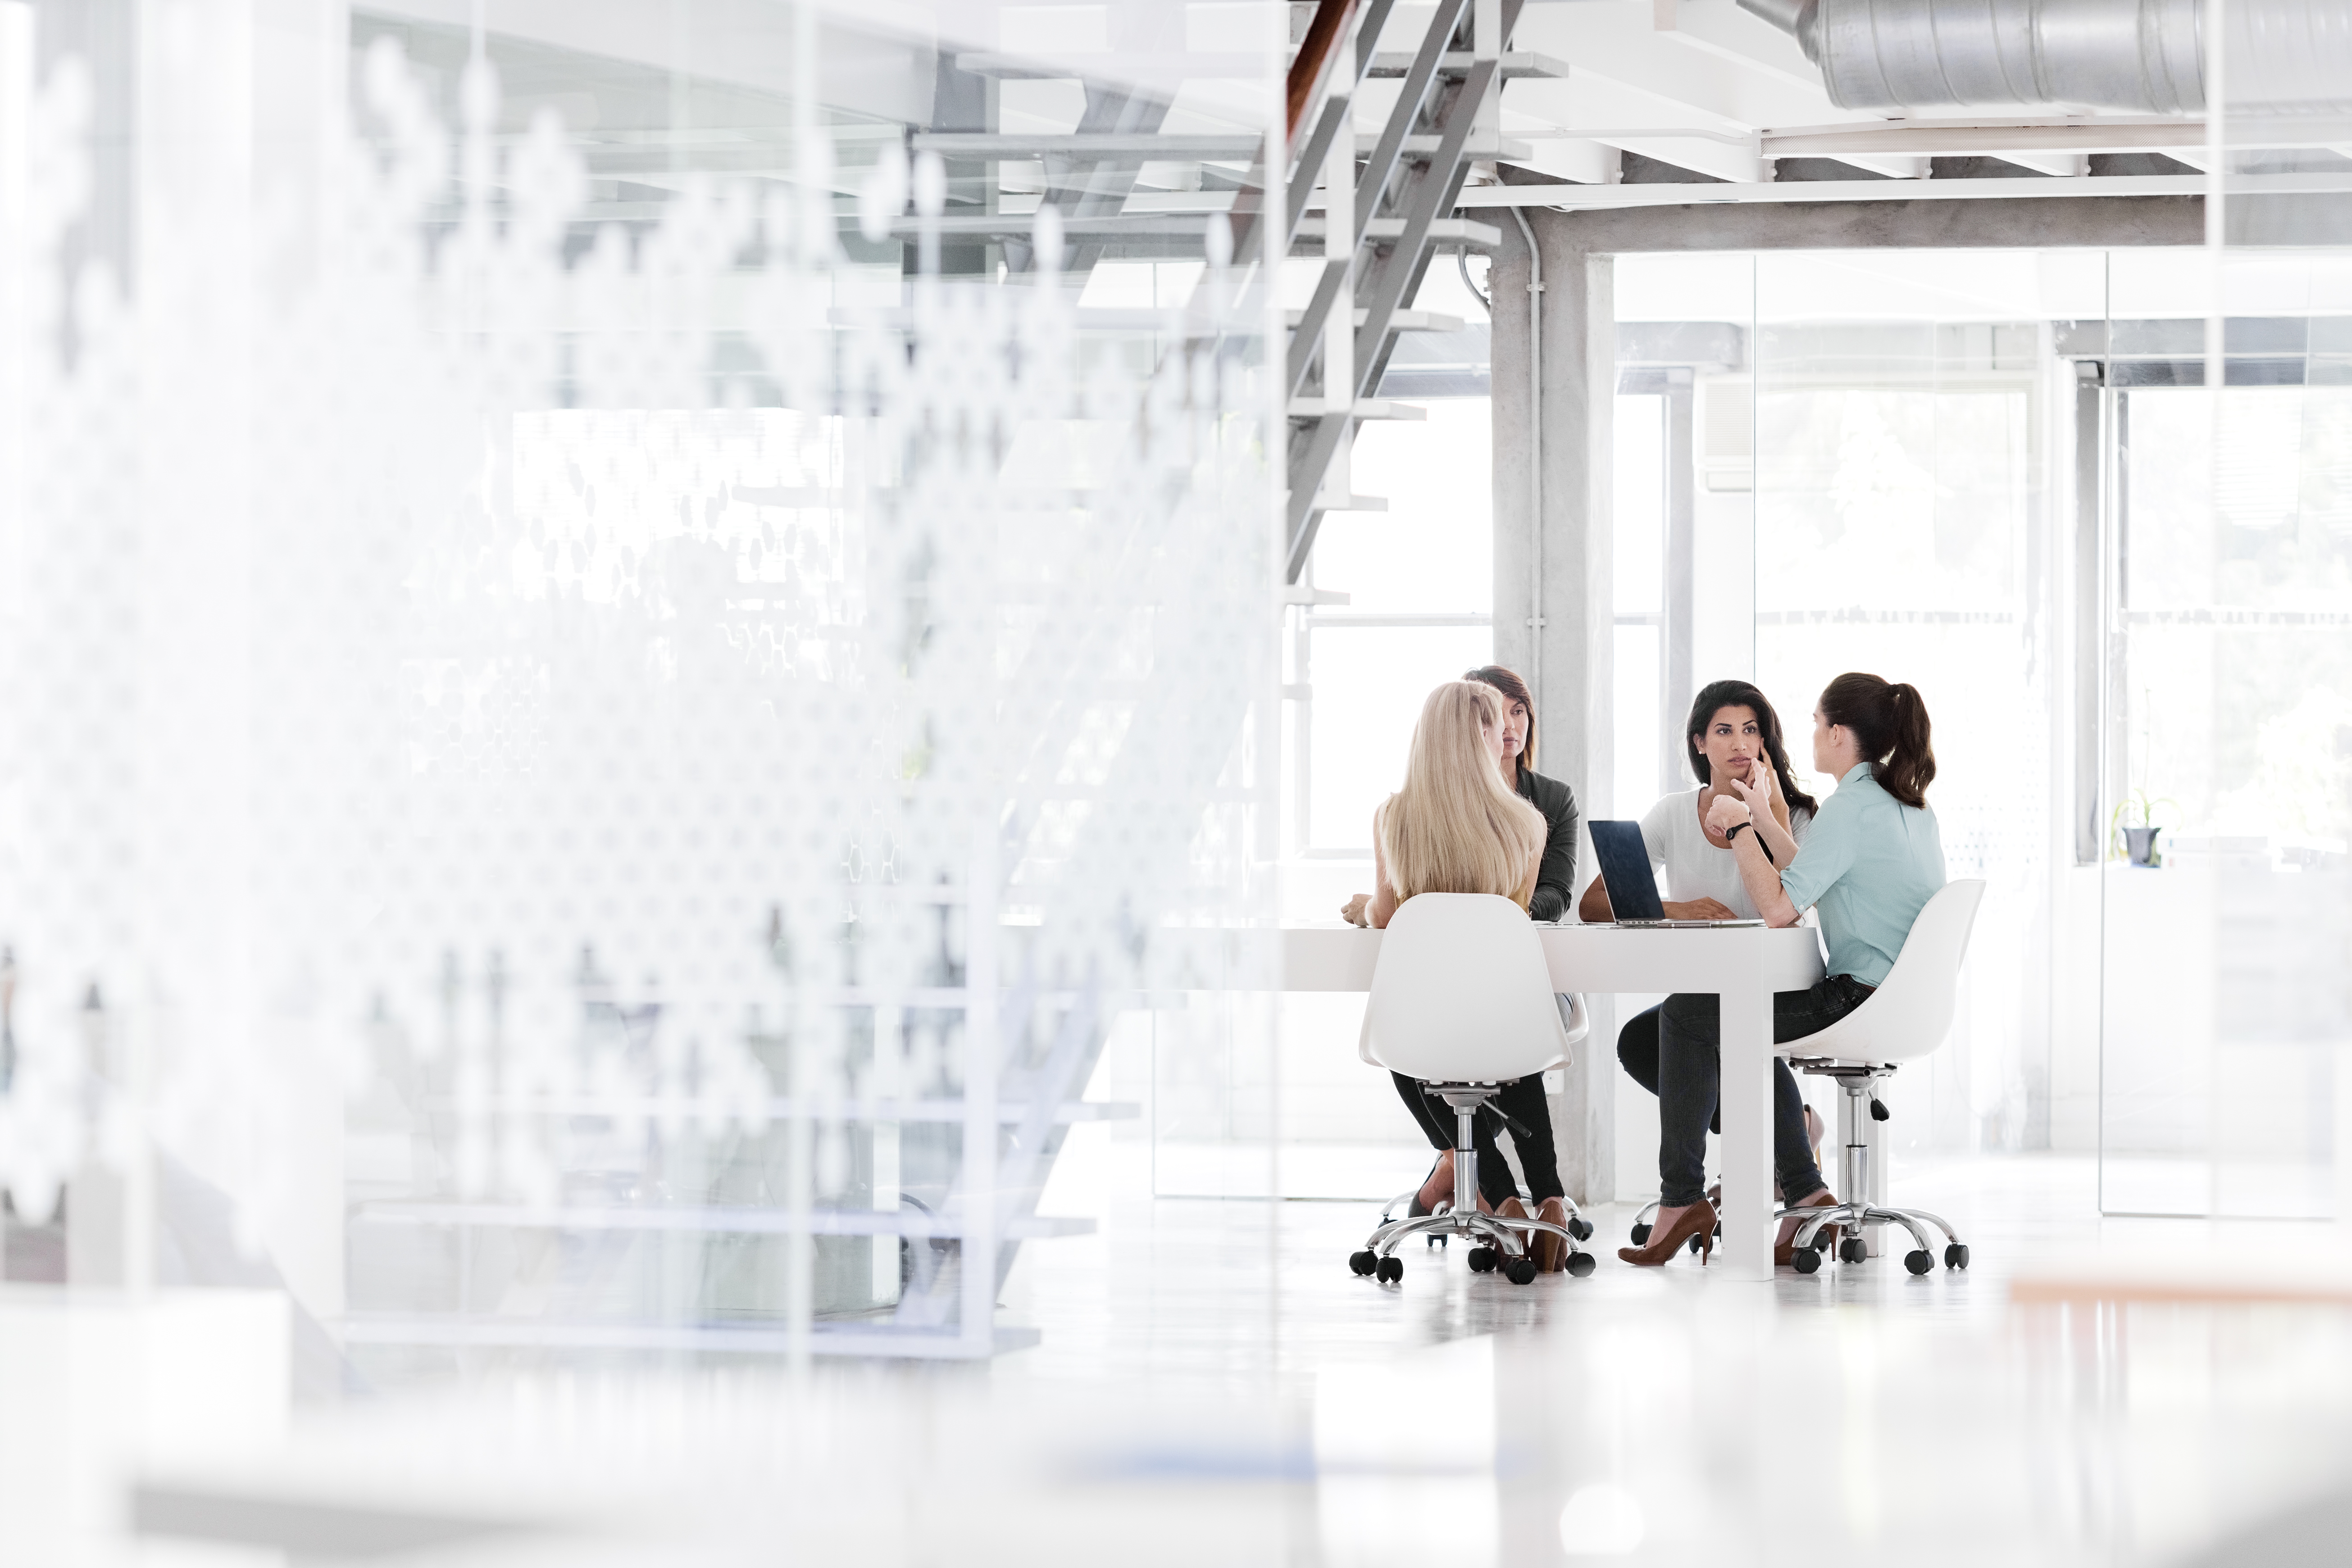 Women in a business meeting in a bright and modern office space.